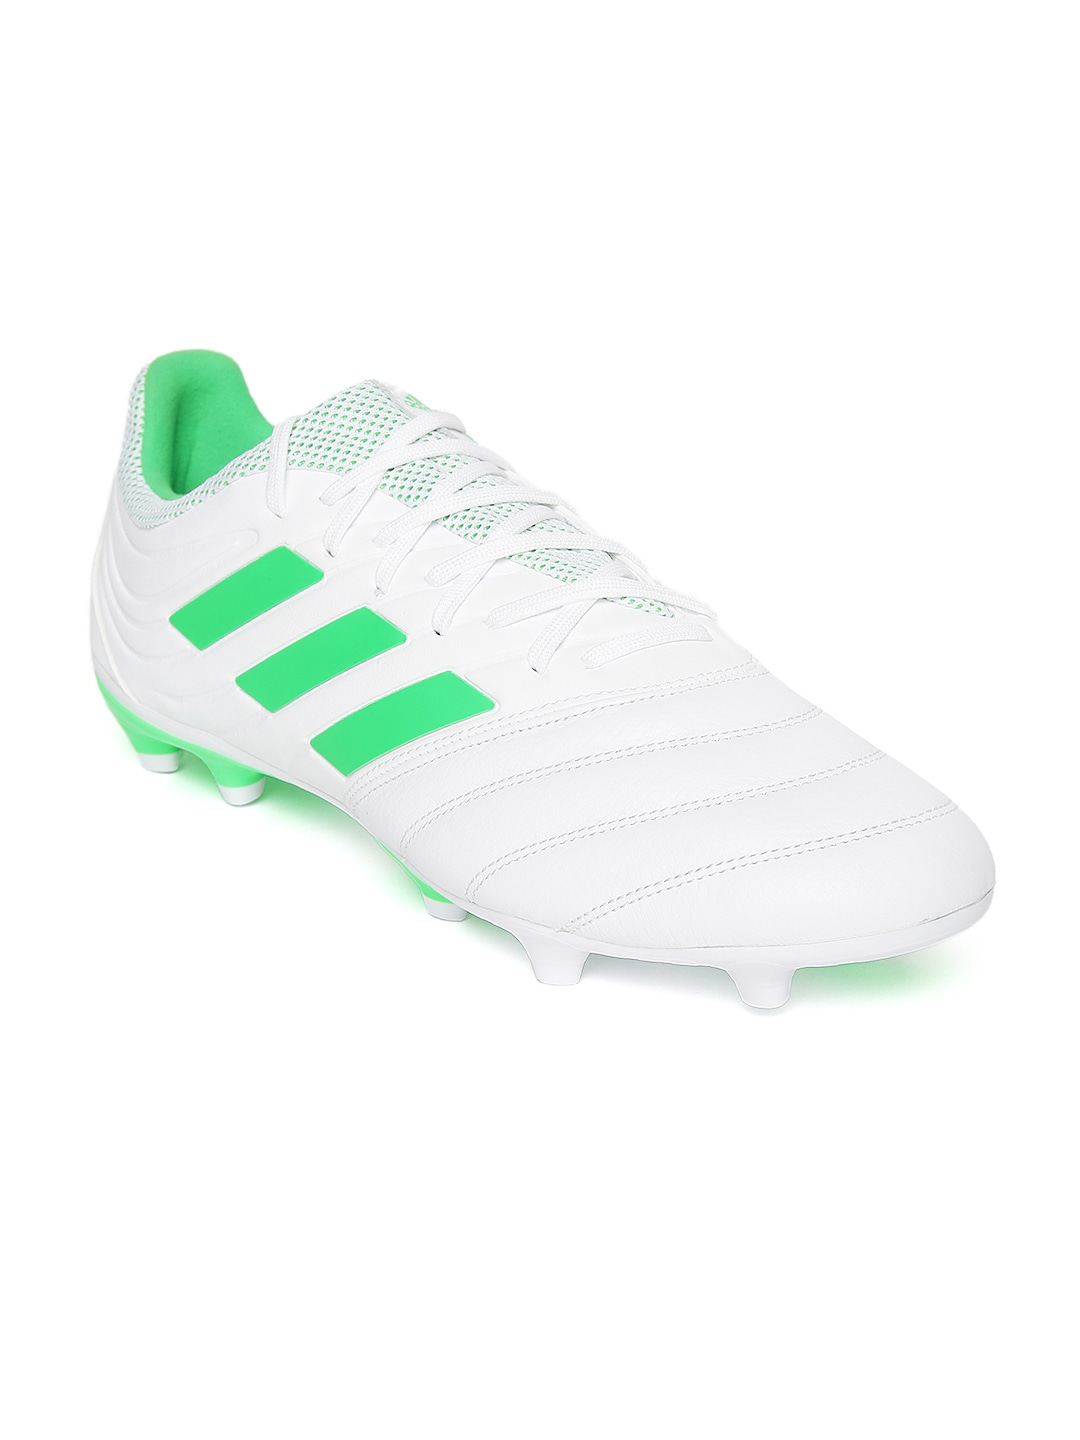 ADIDAS Men White Copa 19 3 Firm Ground Football Shoes